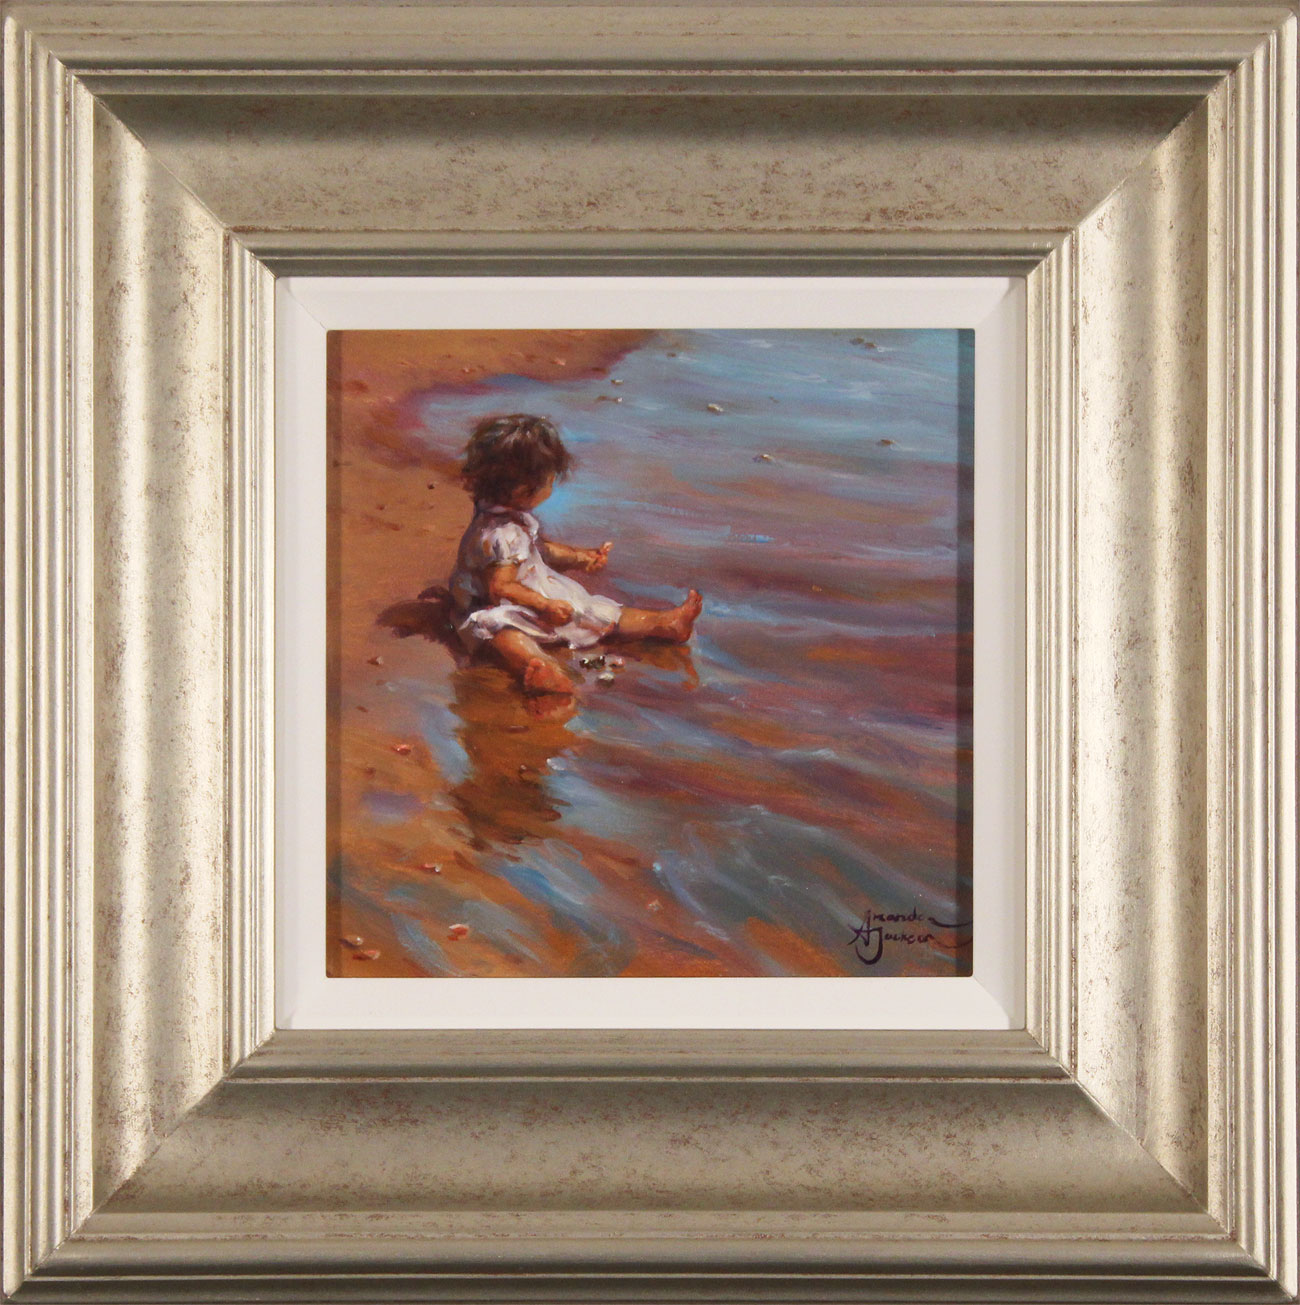 Amanda Jackson, Original oil painting on panel, Collecting Cockle Shells. Click to enlarge